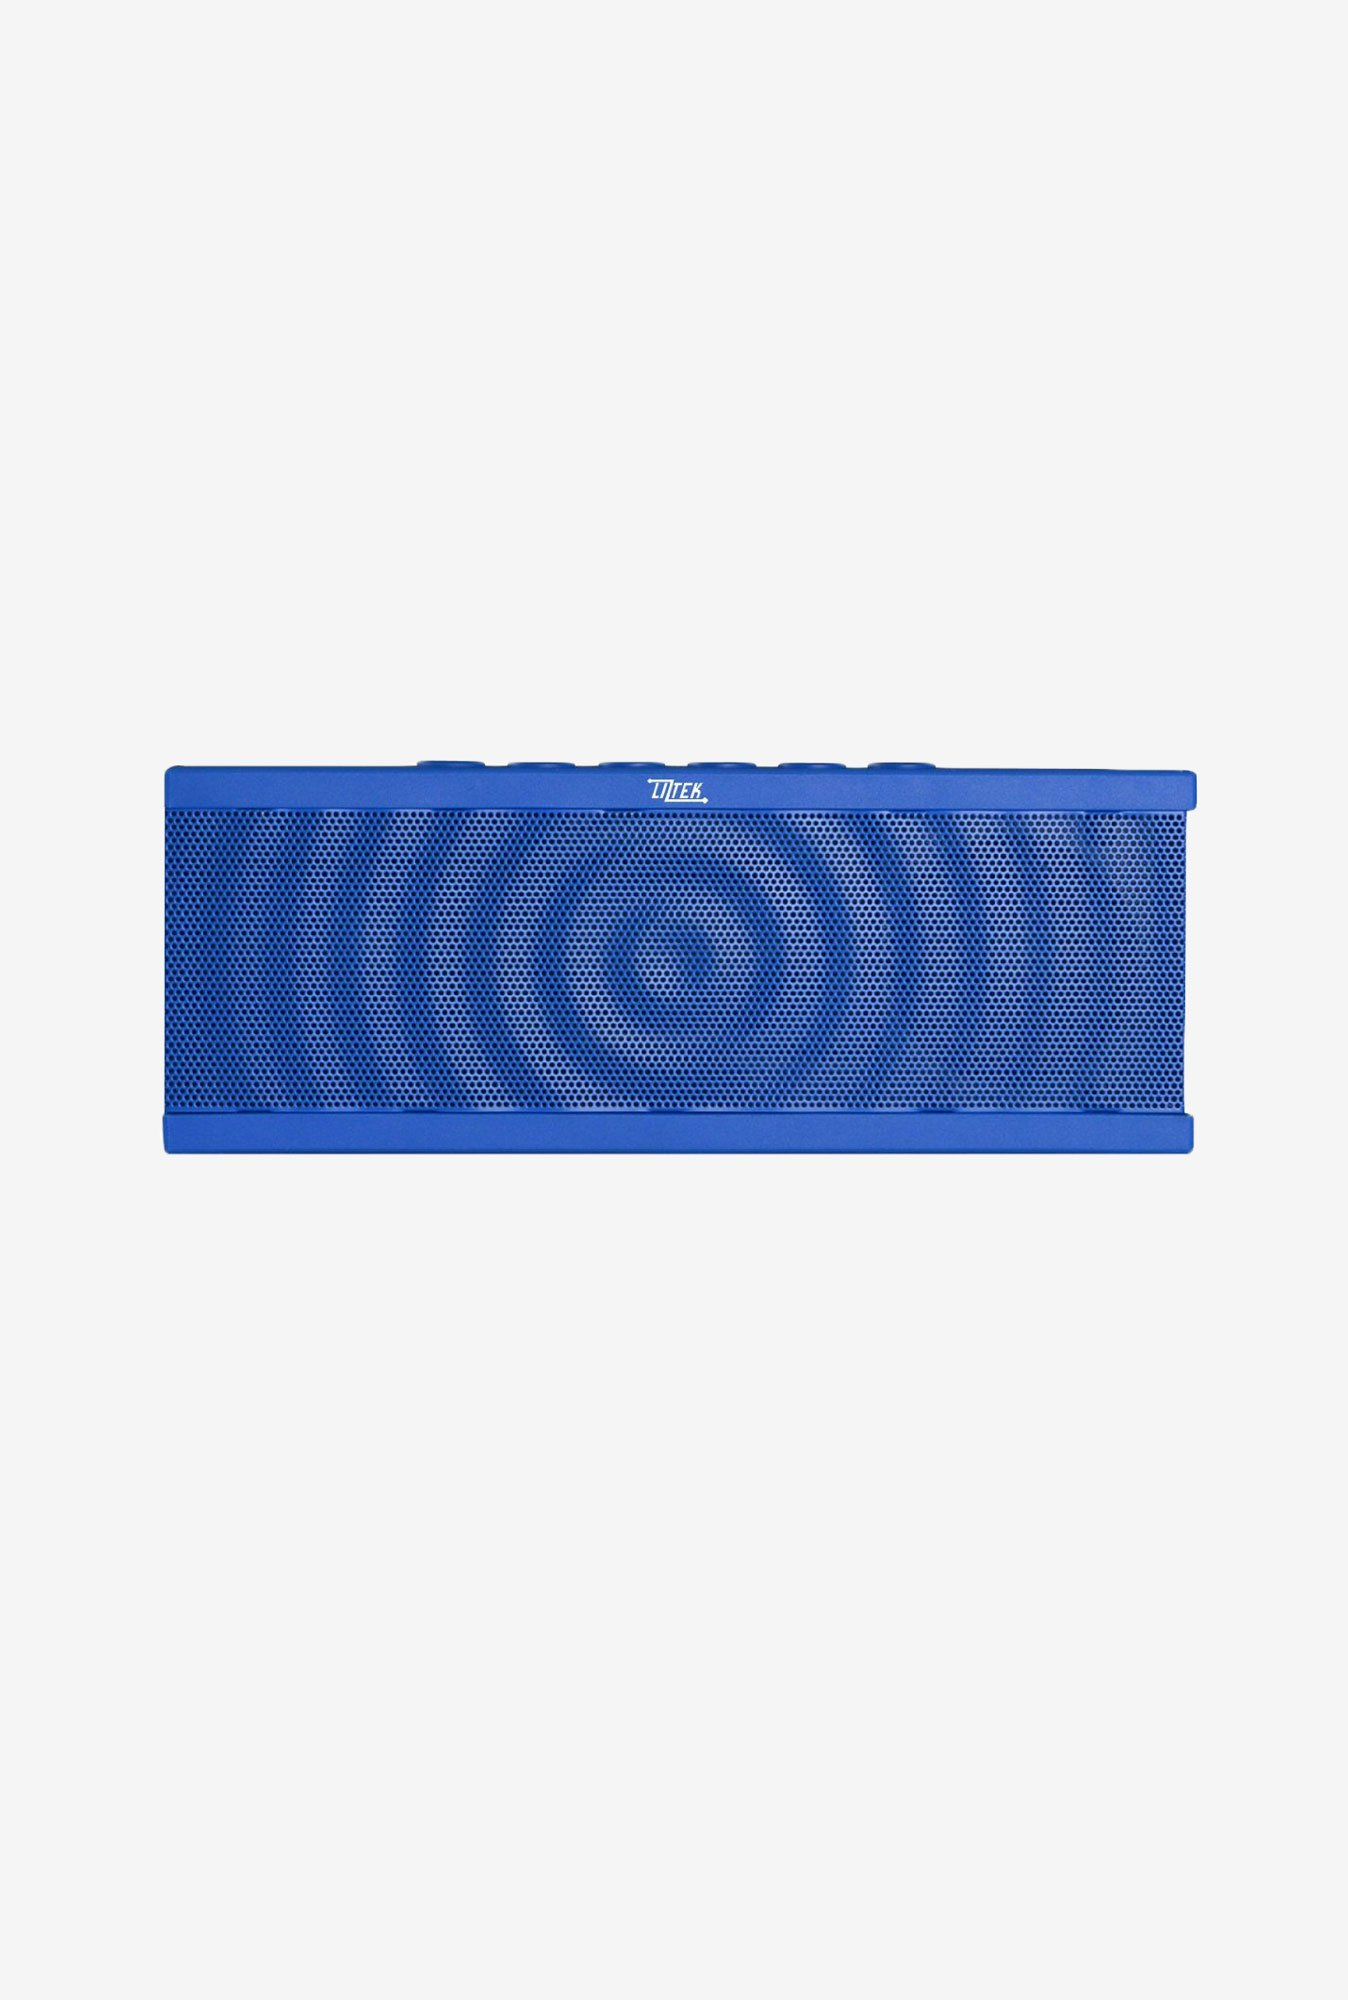 Liztek PSS-100 Portable Wireless Bluetooth Speaker (Blue)